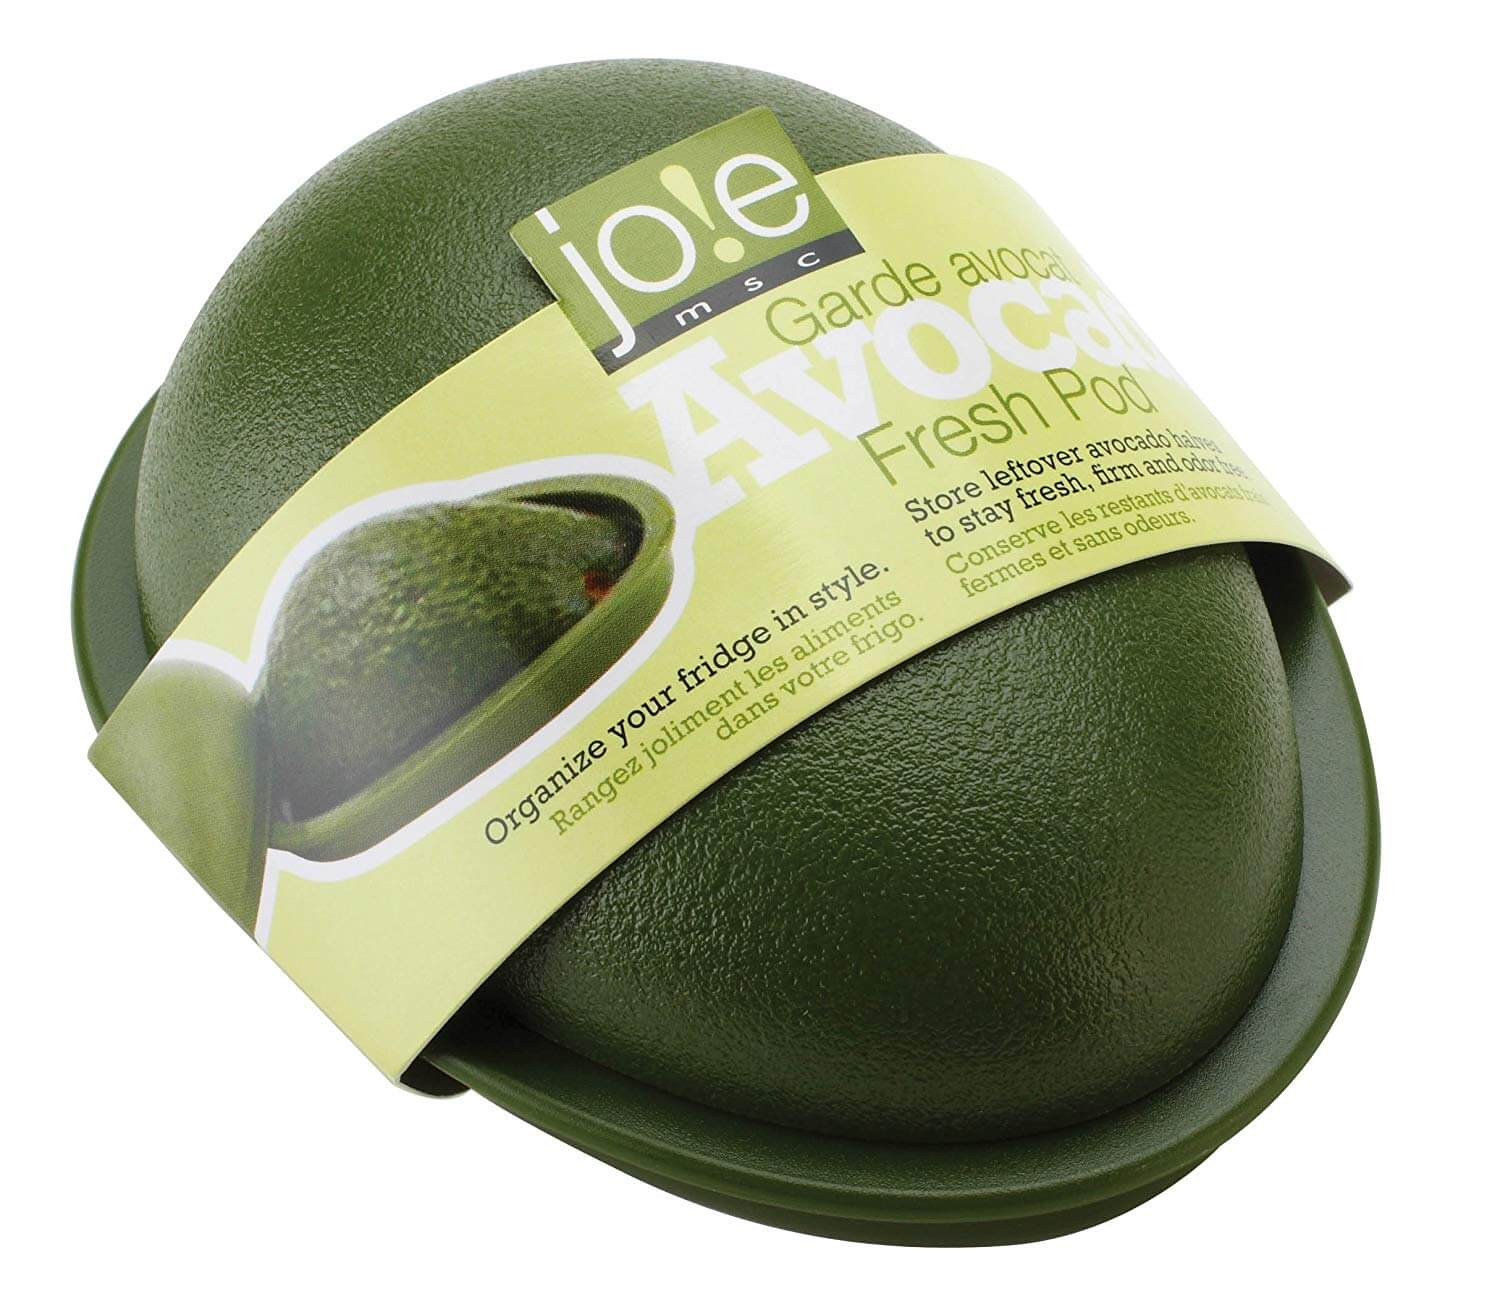 MSC International Joie Fresh Pod Avocado Keeper